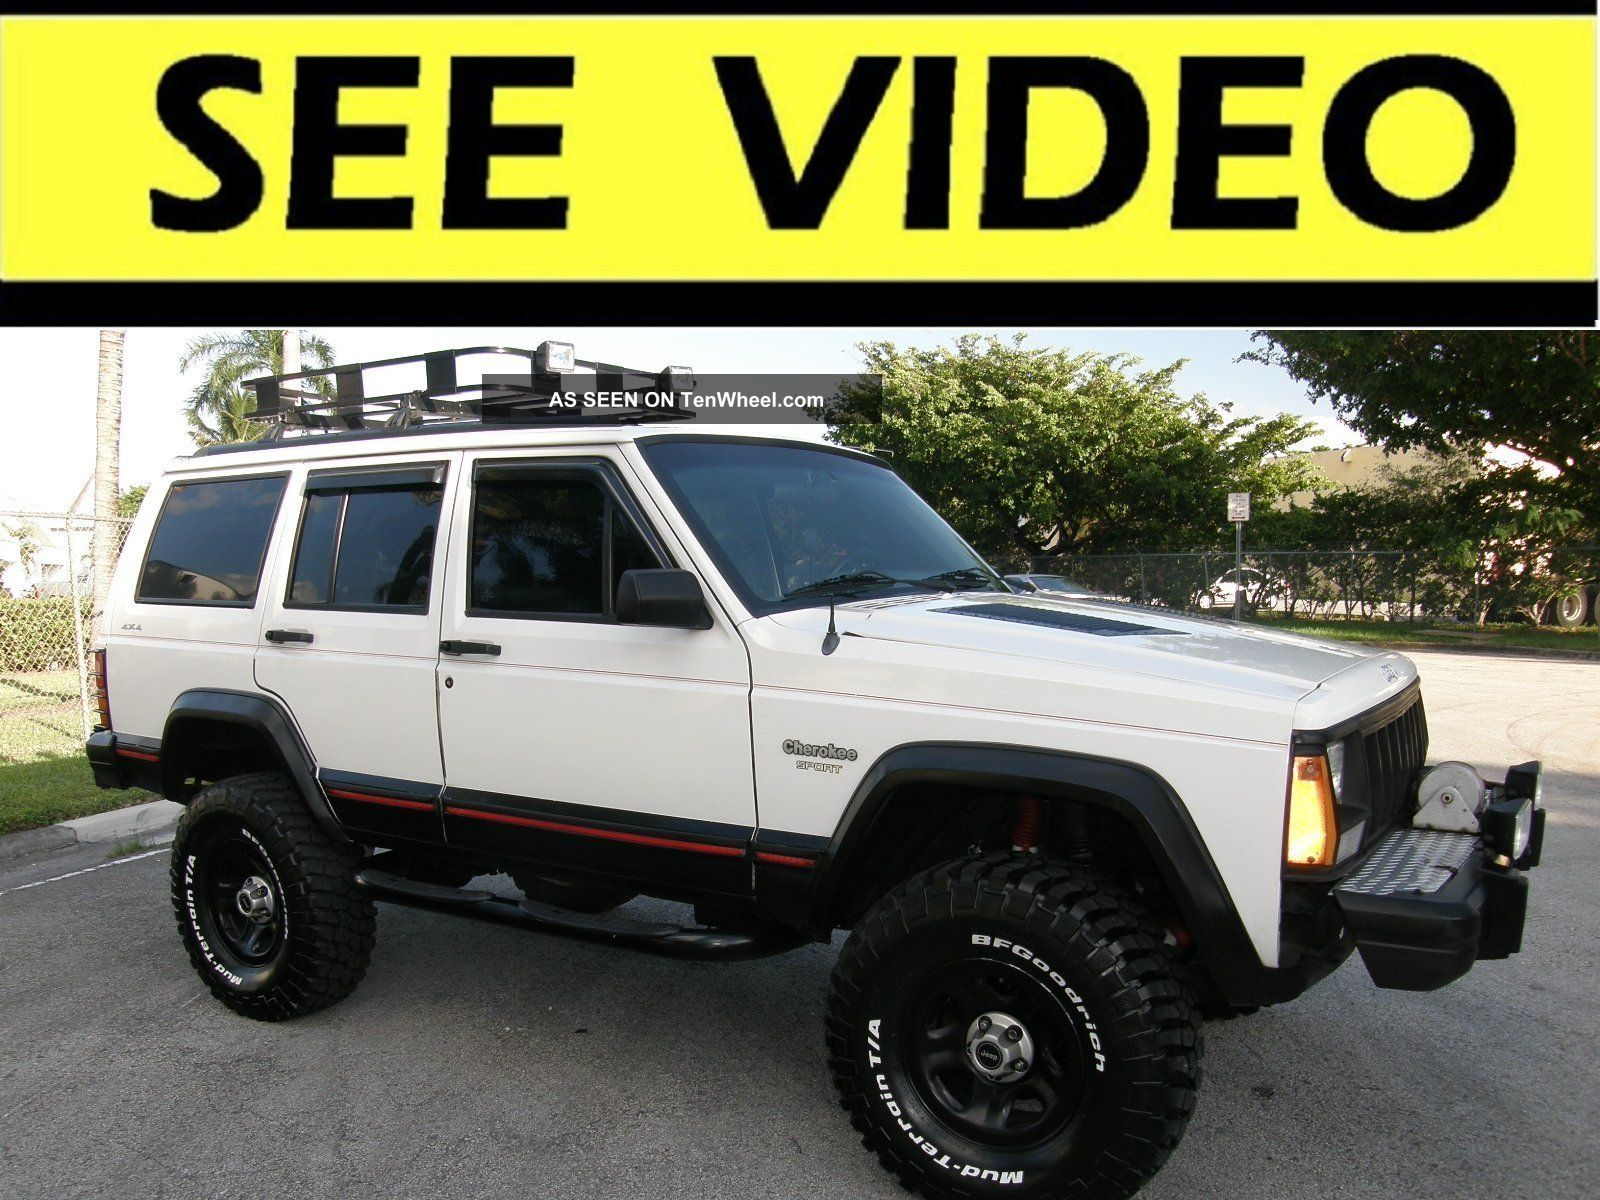 1996 Jeep Cherokee Sport 6 Inch Lift Custom Work See Video Wiring Diagram